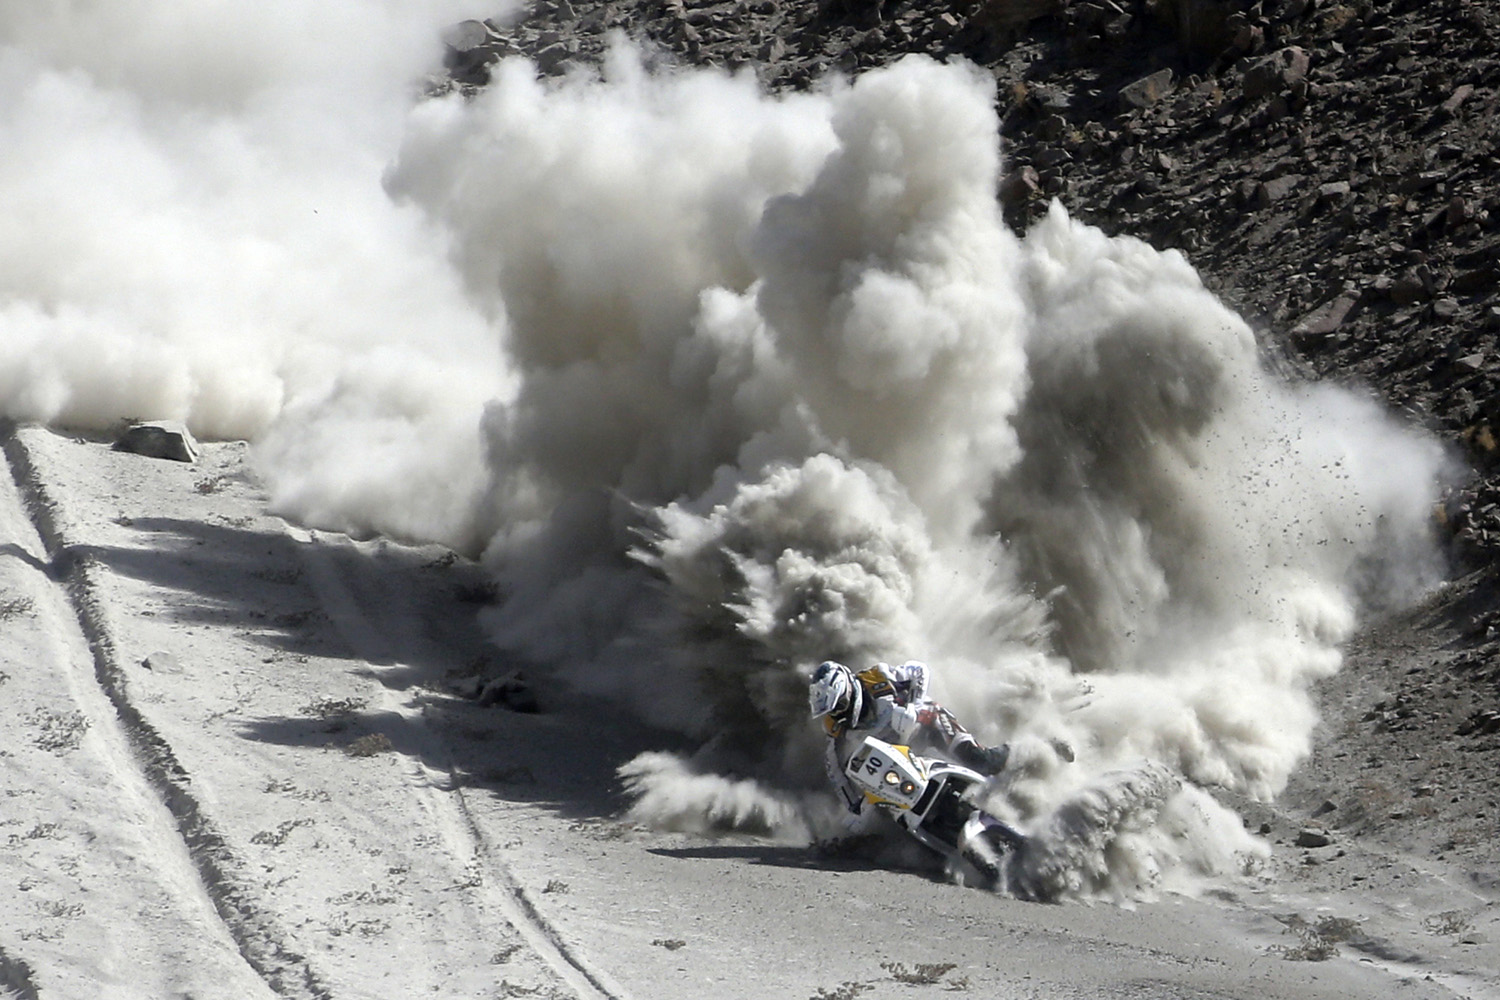 Jan. 9, 2013. South Africa's Riaan Van Niekerk falls with his KTM during the 5th stage of the Dakar Rally 2013 from Arequipa in Peru to Arica in Chile.